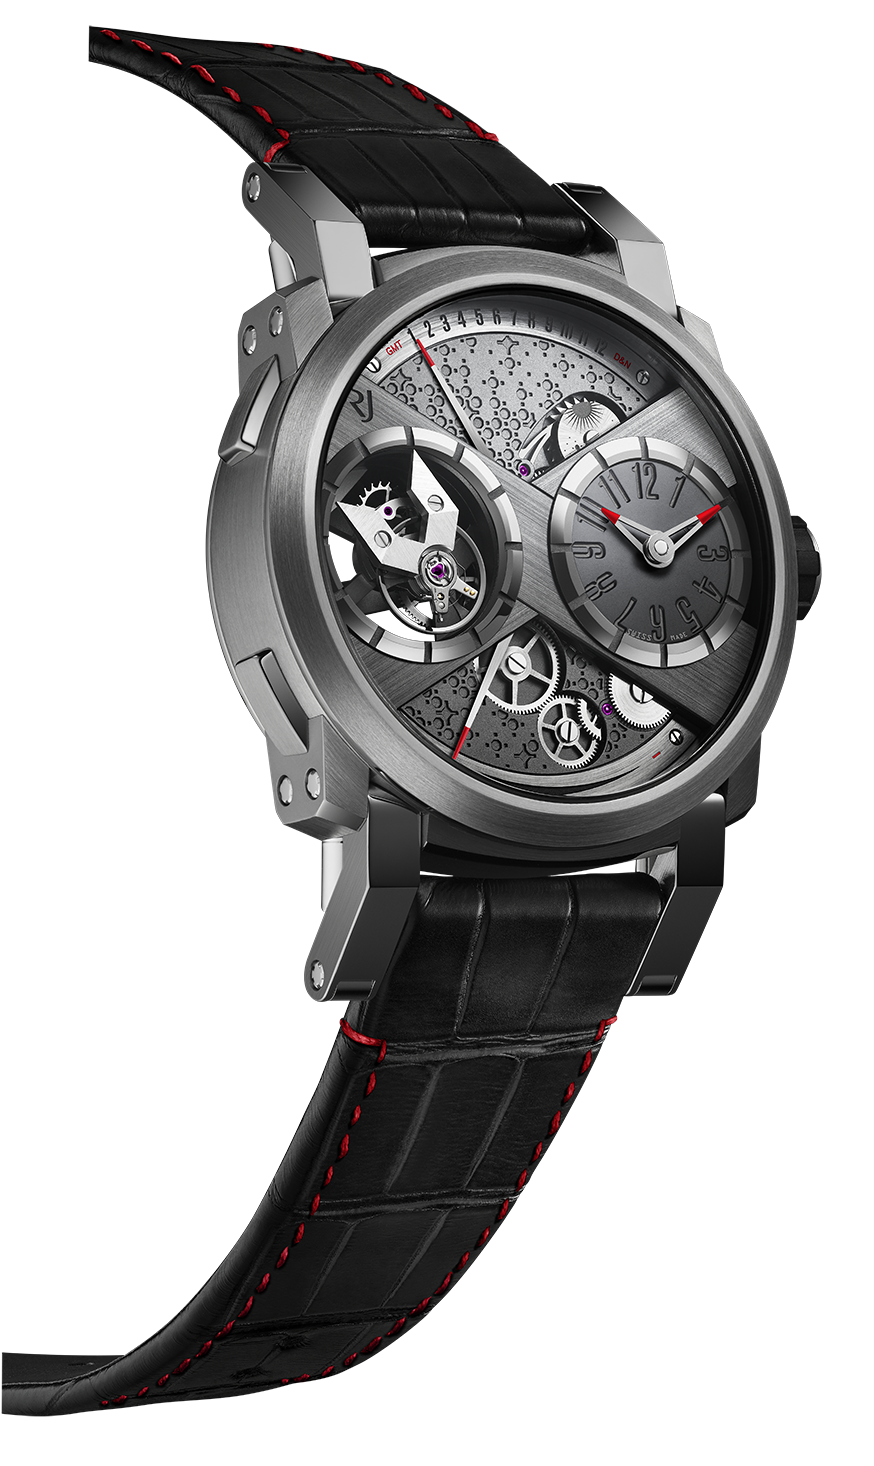 Military Time Clock >> Romain Jerome Moon Orbiter GMT - watchuseek.com